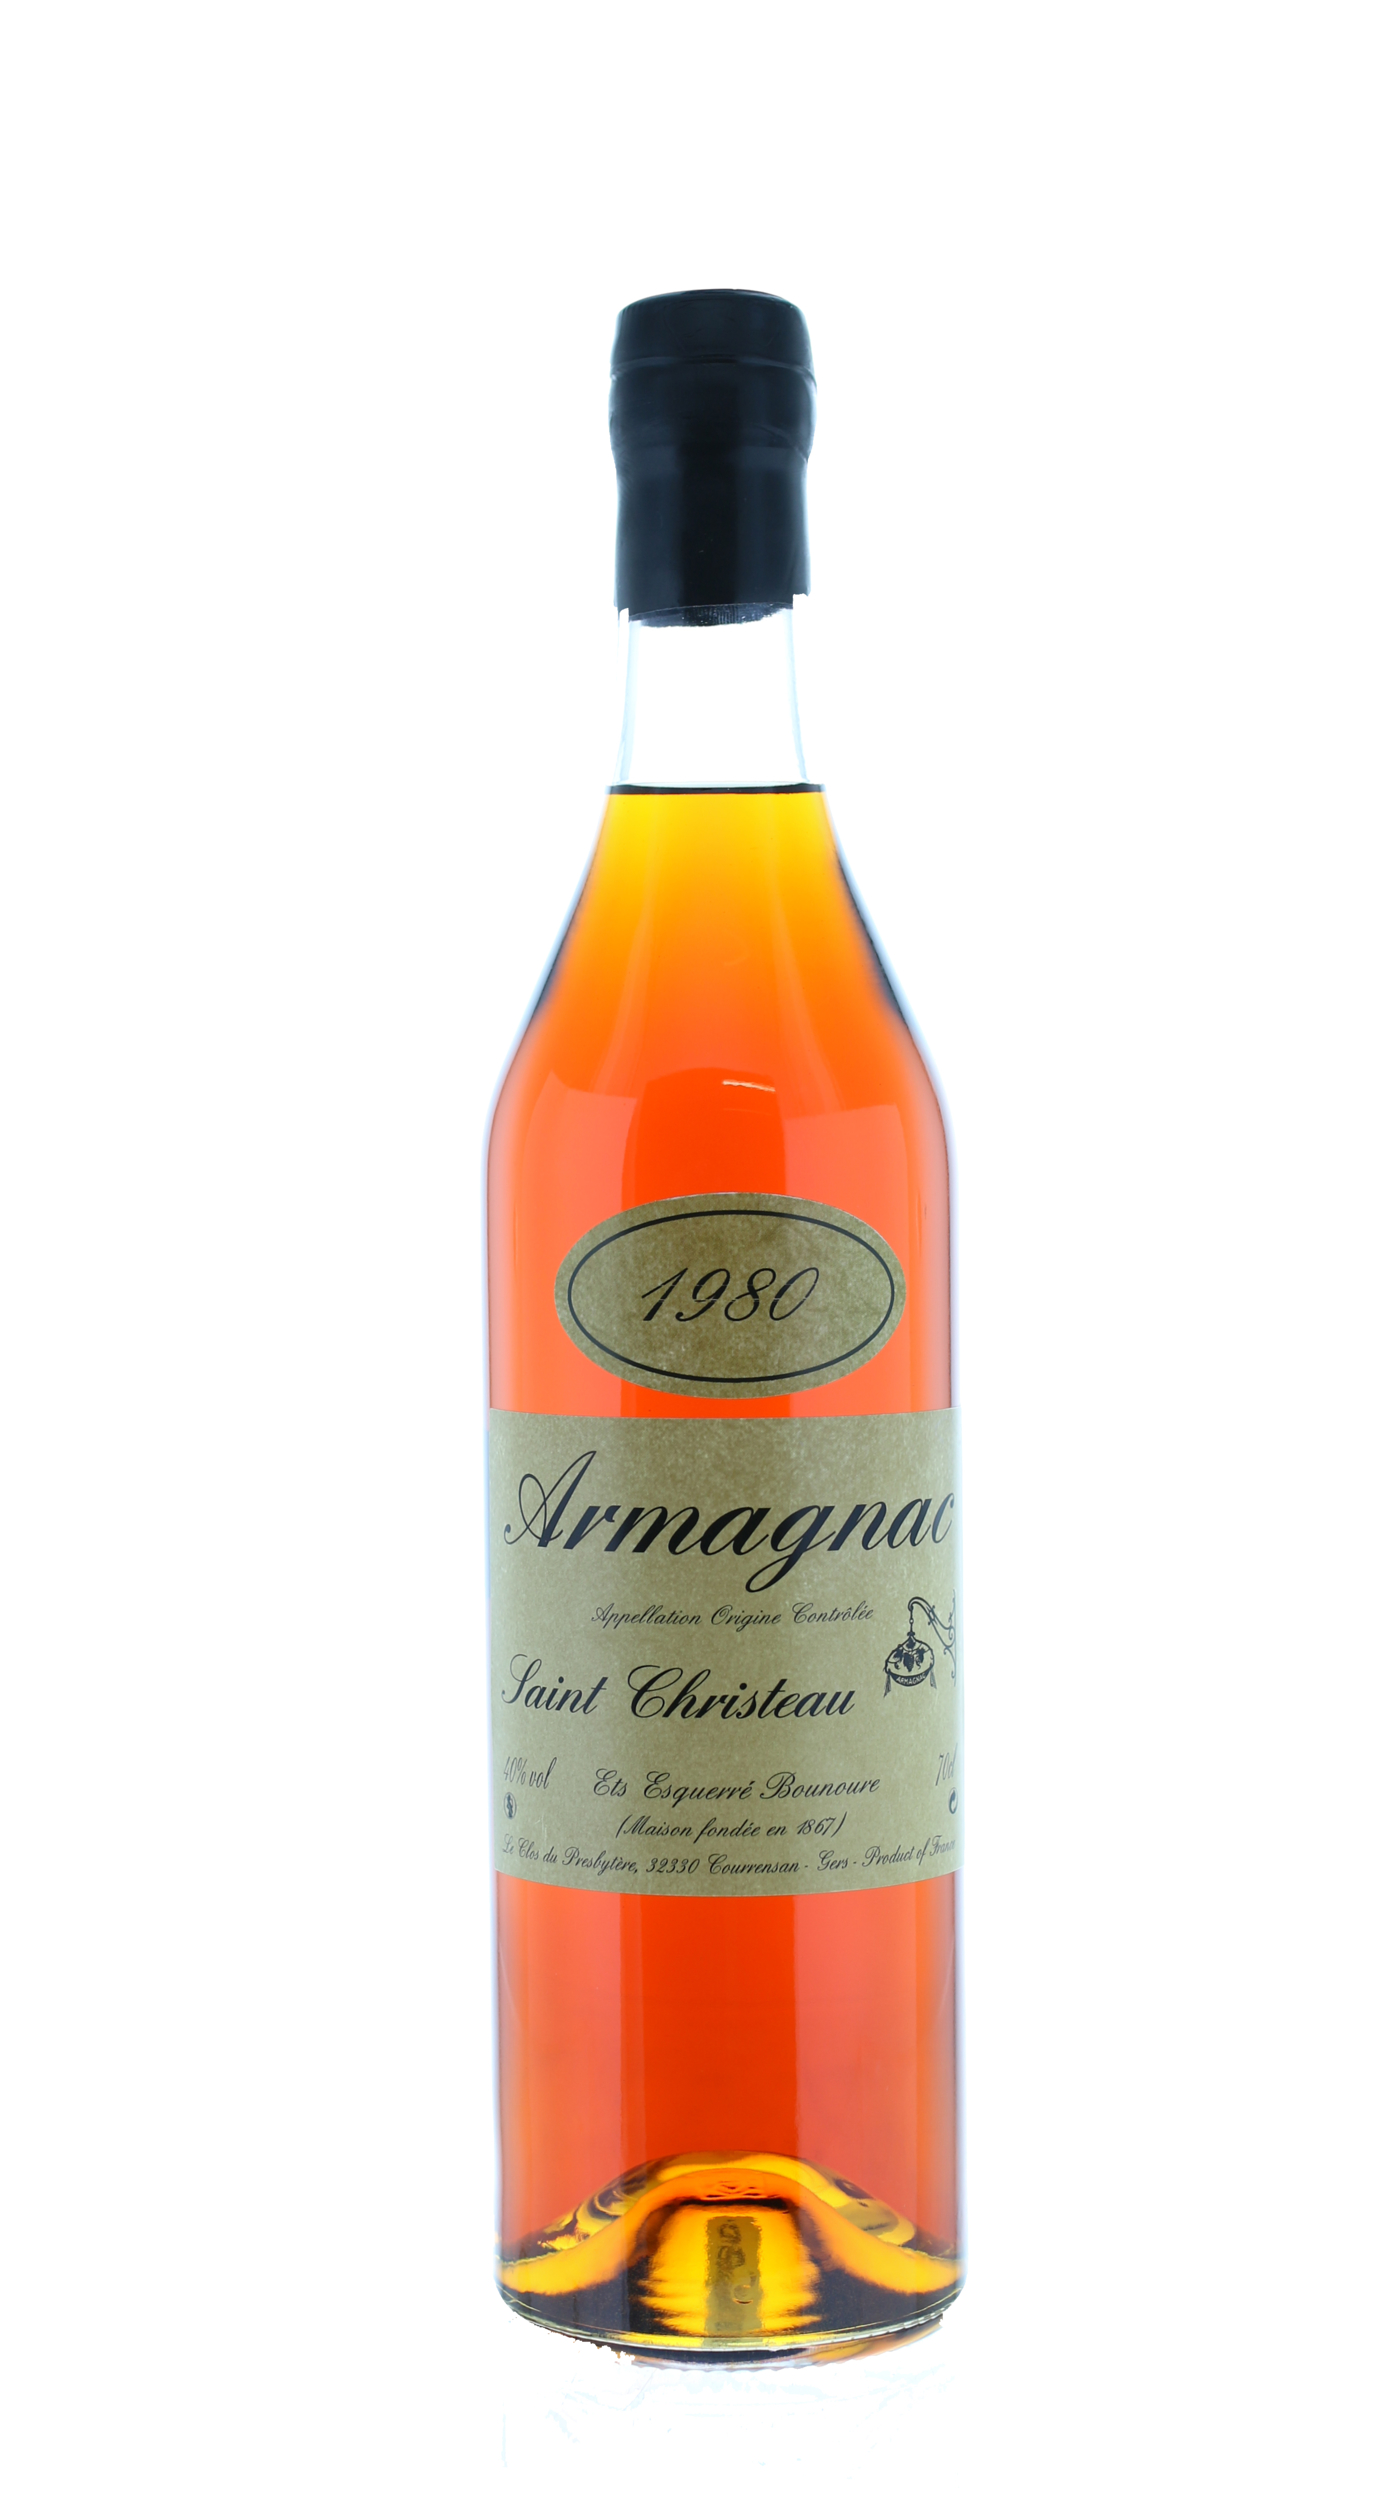 ARMAGNAC 1980 Saint-Christeau - 40° - G. Miclo